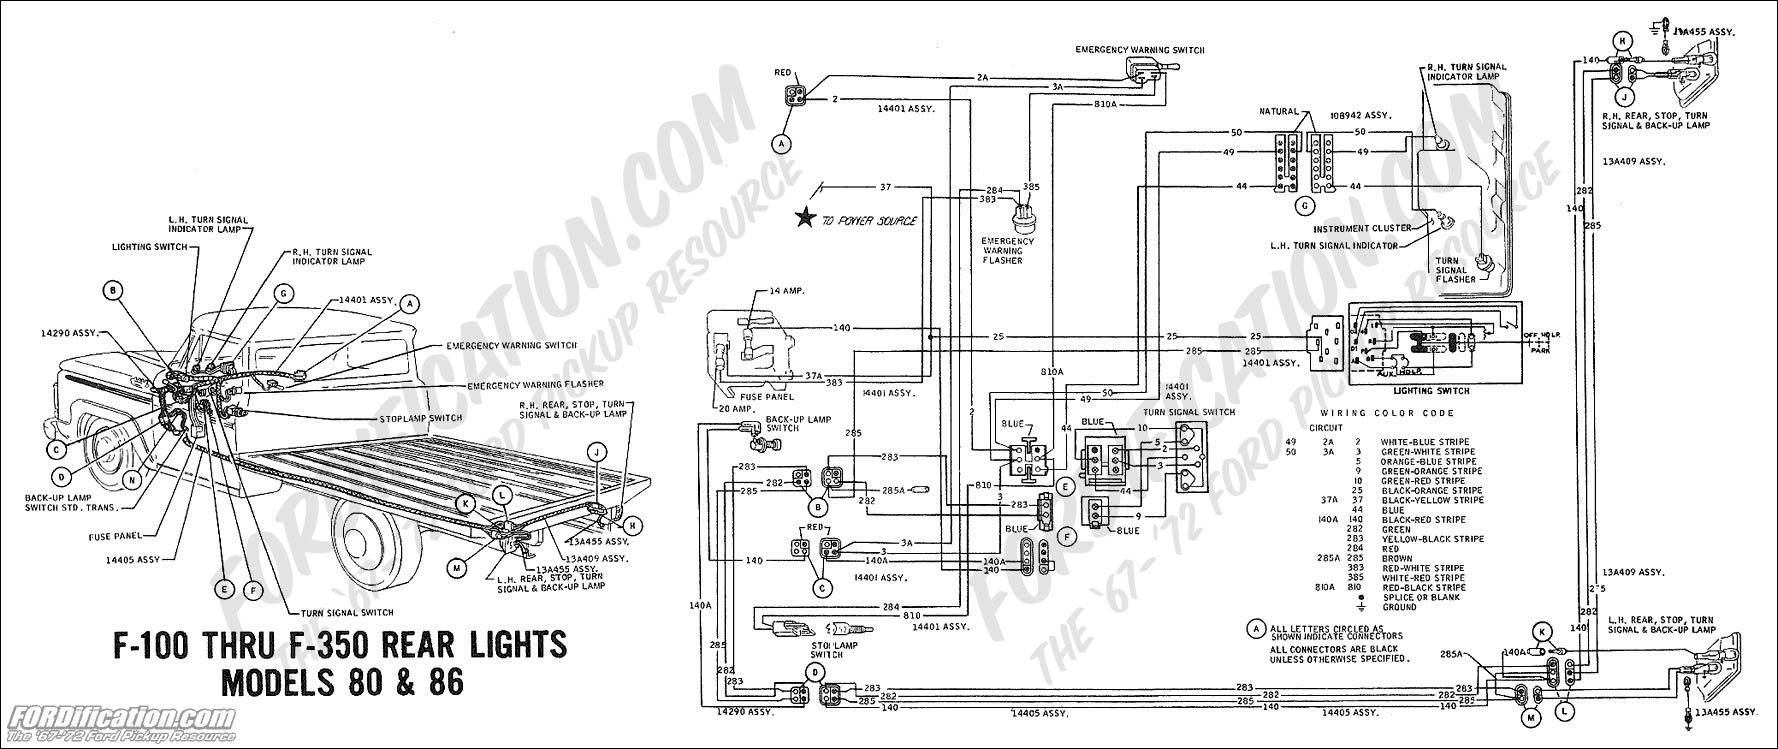 2002 Ford F150 Fuel Pump Wiring Diagram Data Diagrams 1993 Truck Technical Drawings And Schematics Section H Explorer Relay